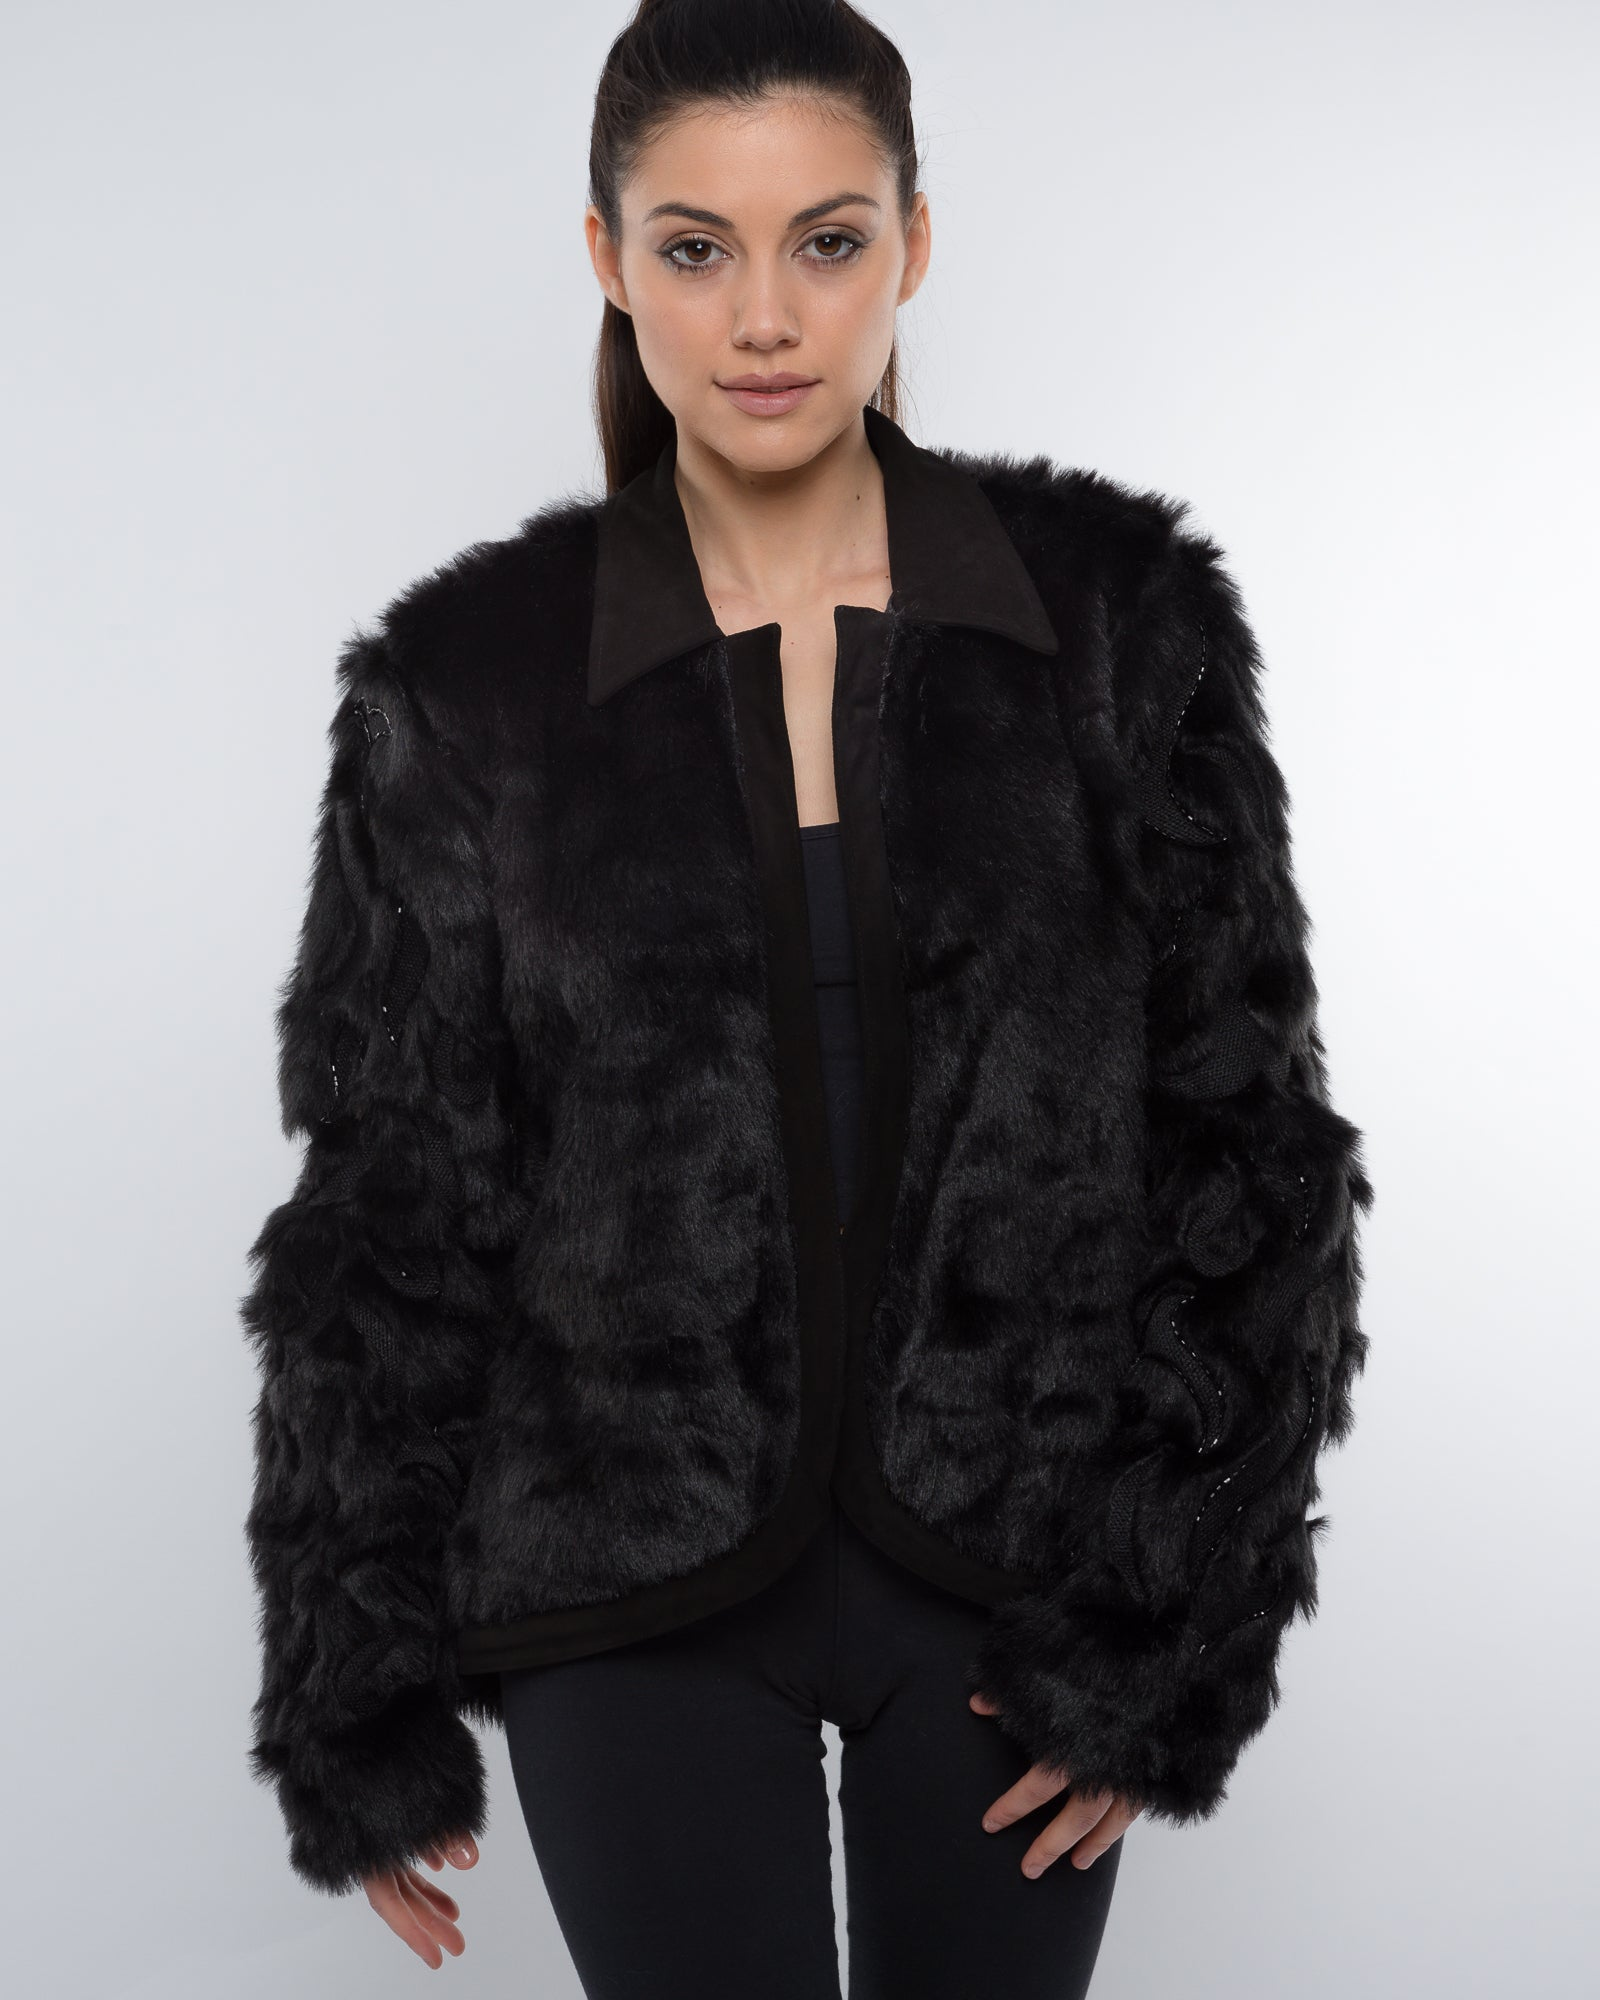 THE SLEEVE EMBROIDERED AND BEADED FAUX FUR JACKET